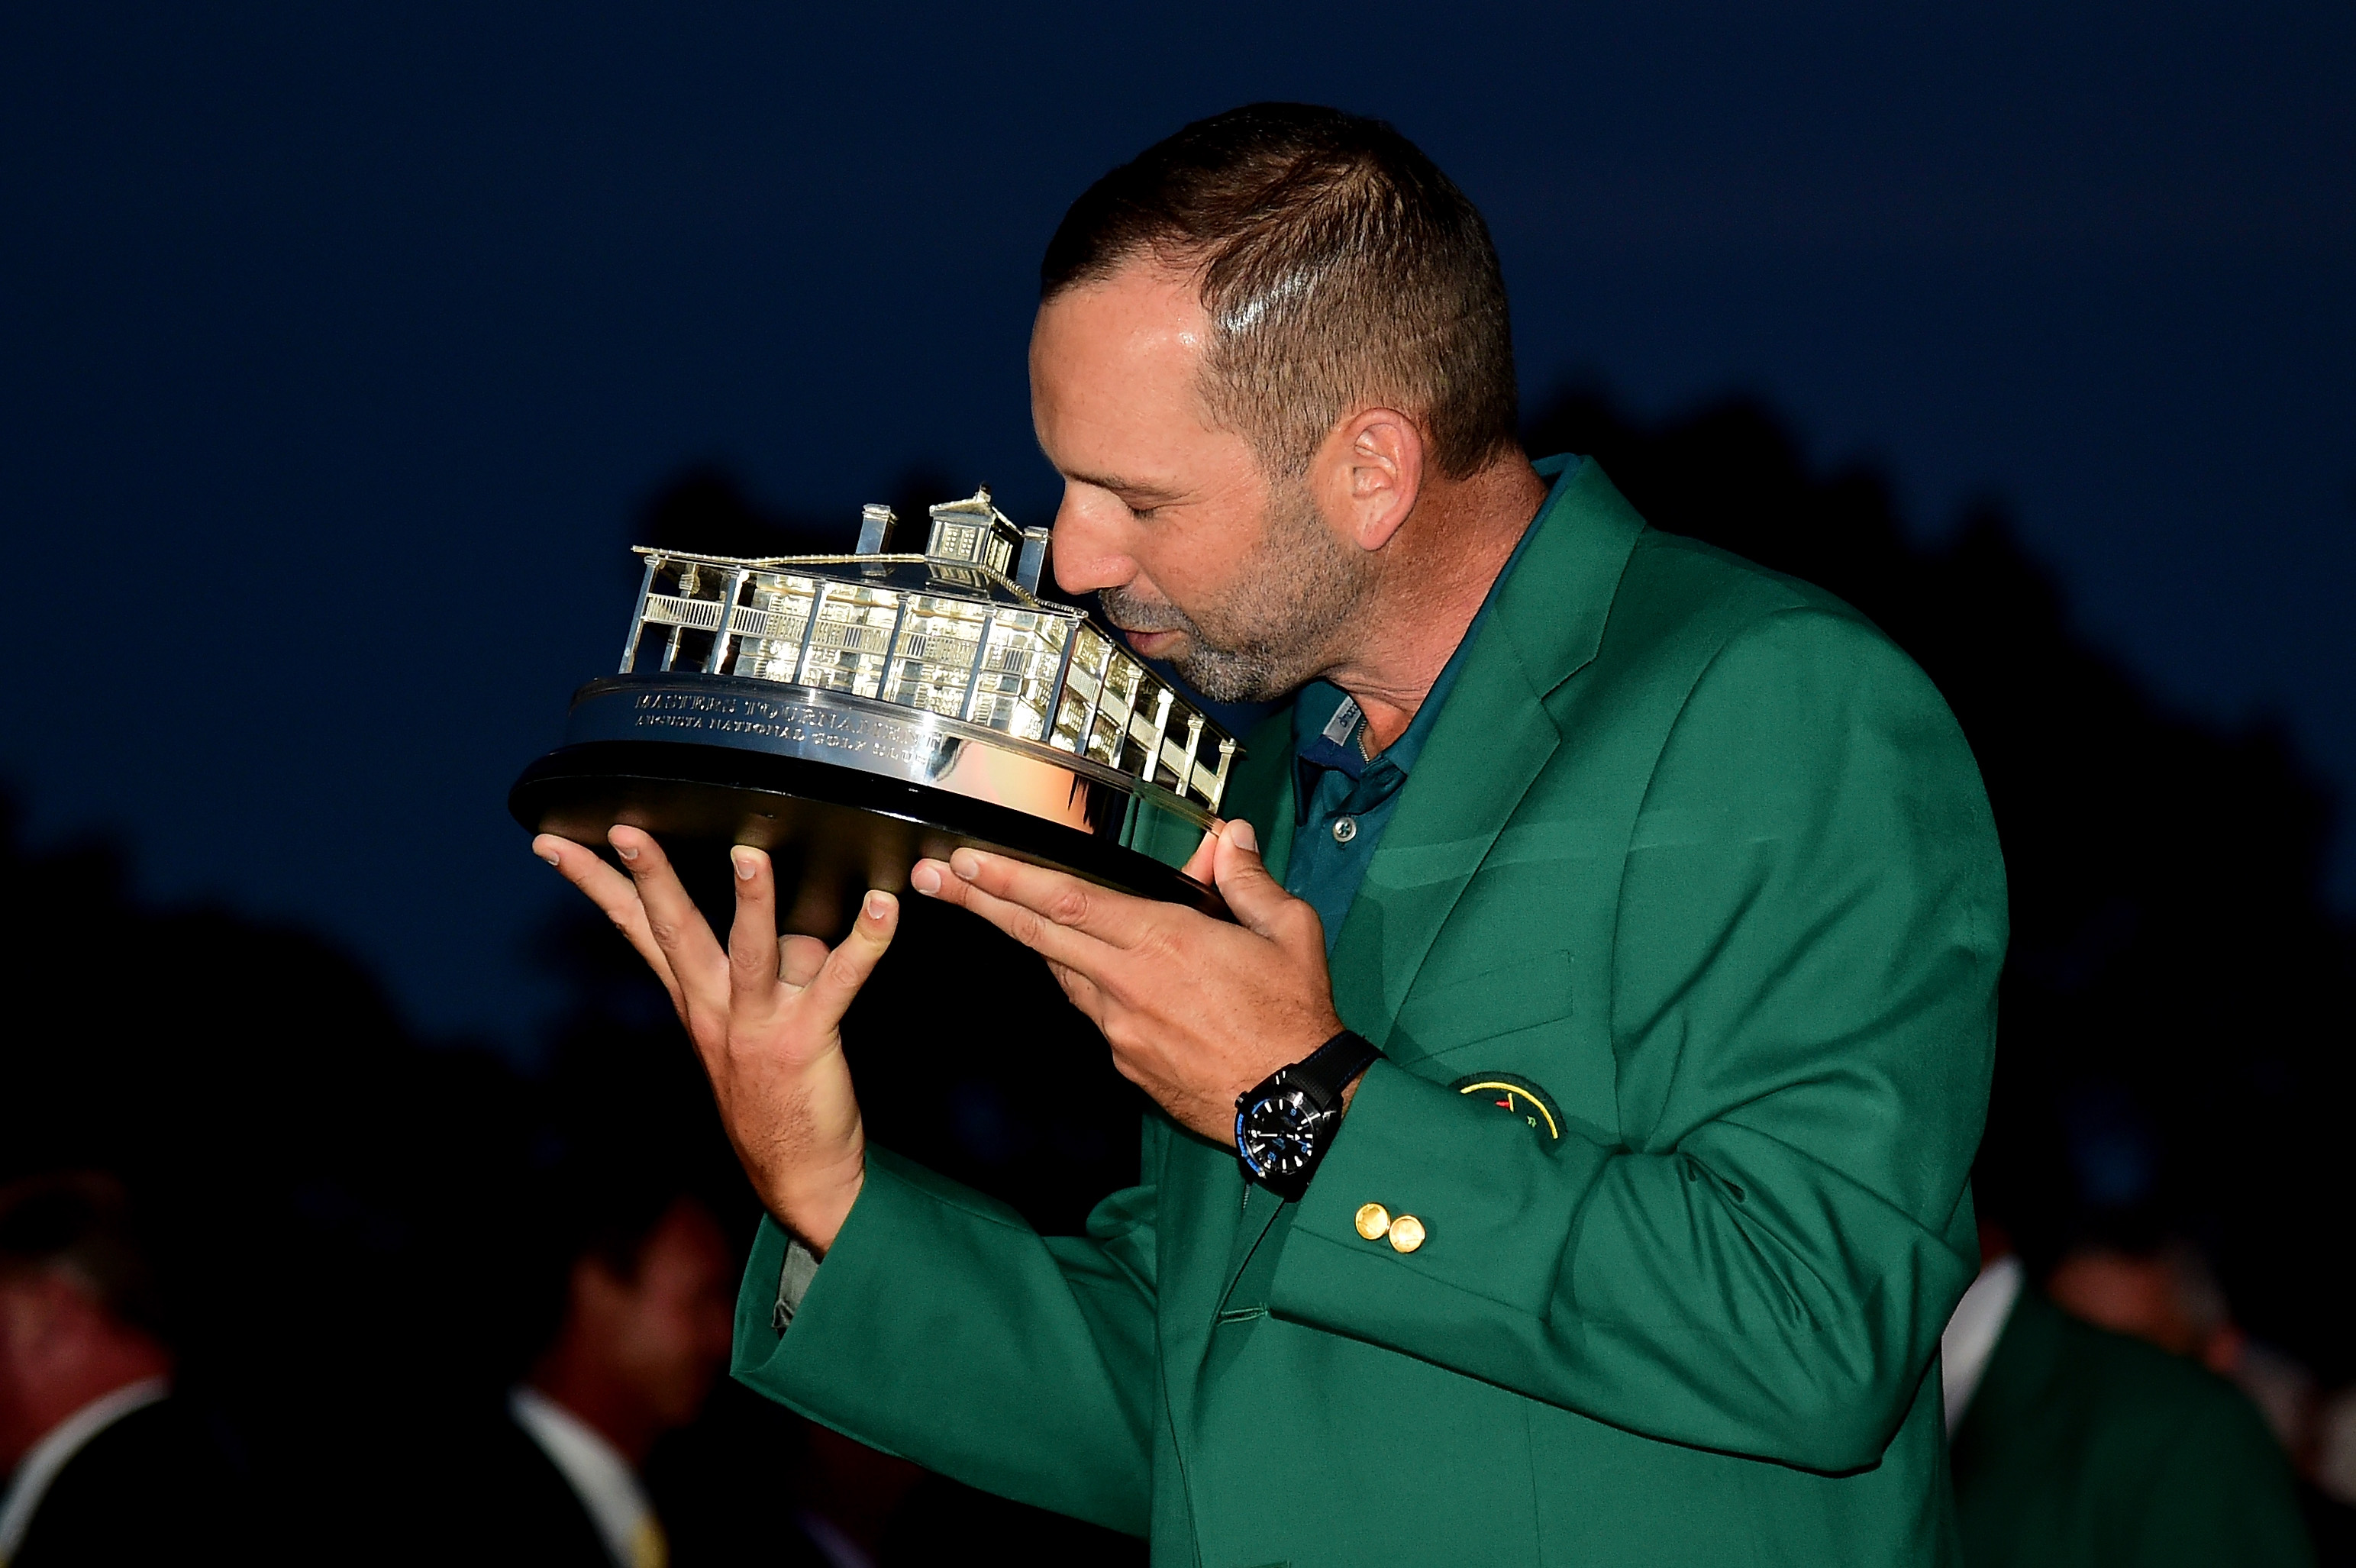 Garcia Takes Major Title At Last With Masters Win cover image